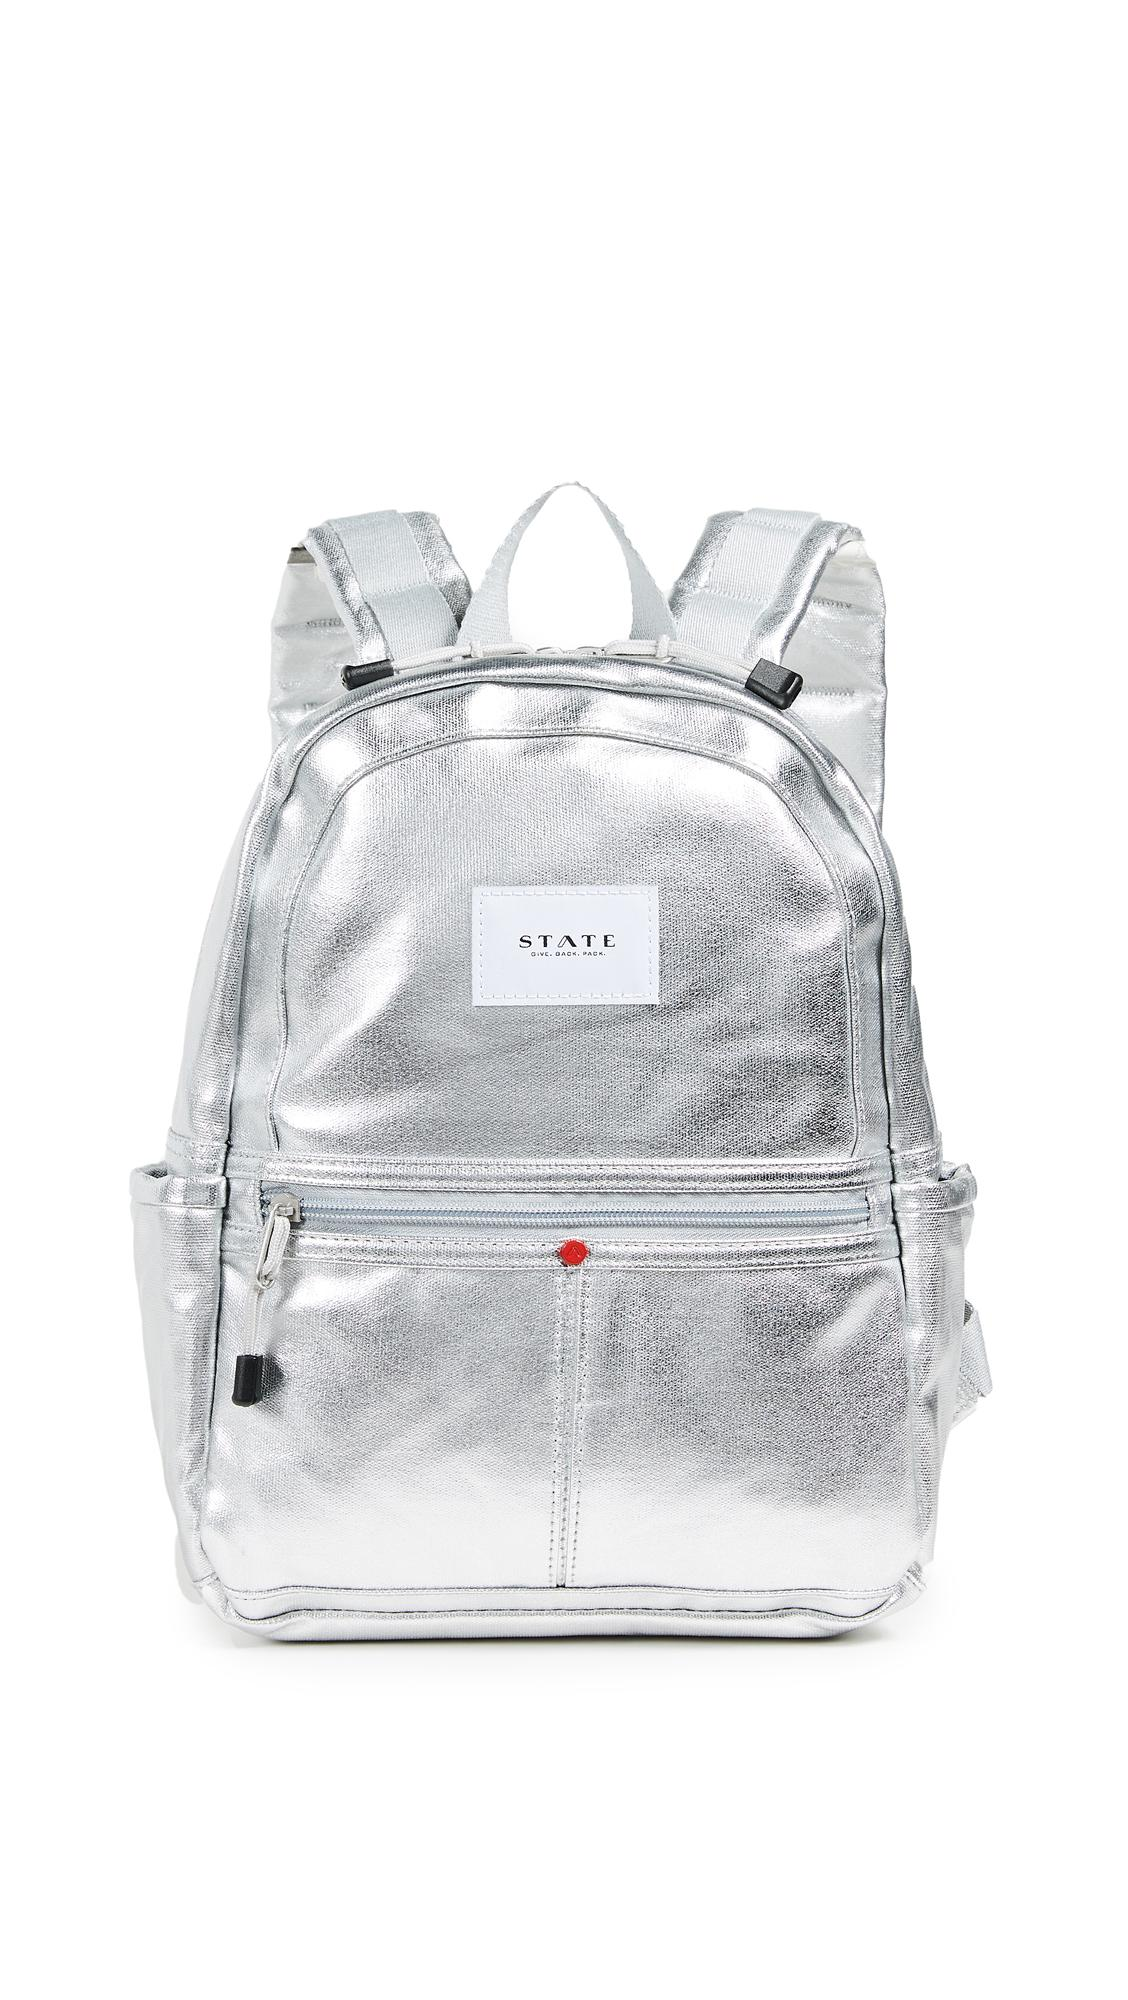 state mini kane backpack in silver modesensstate mini kane backpack in silver